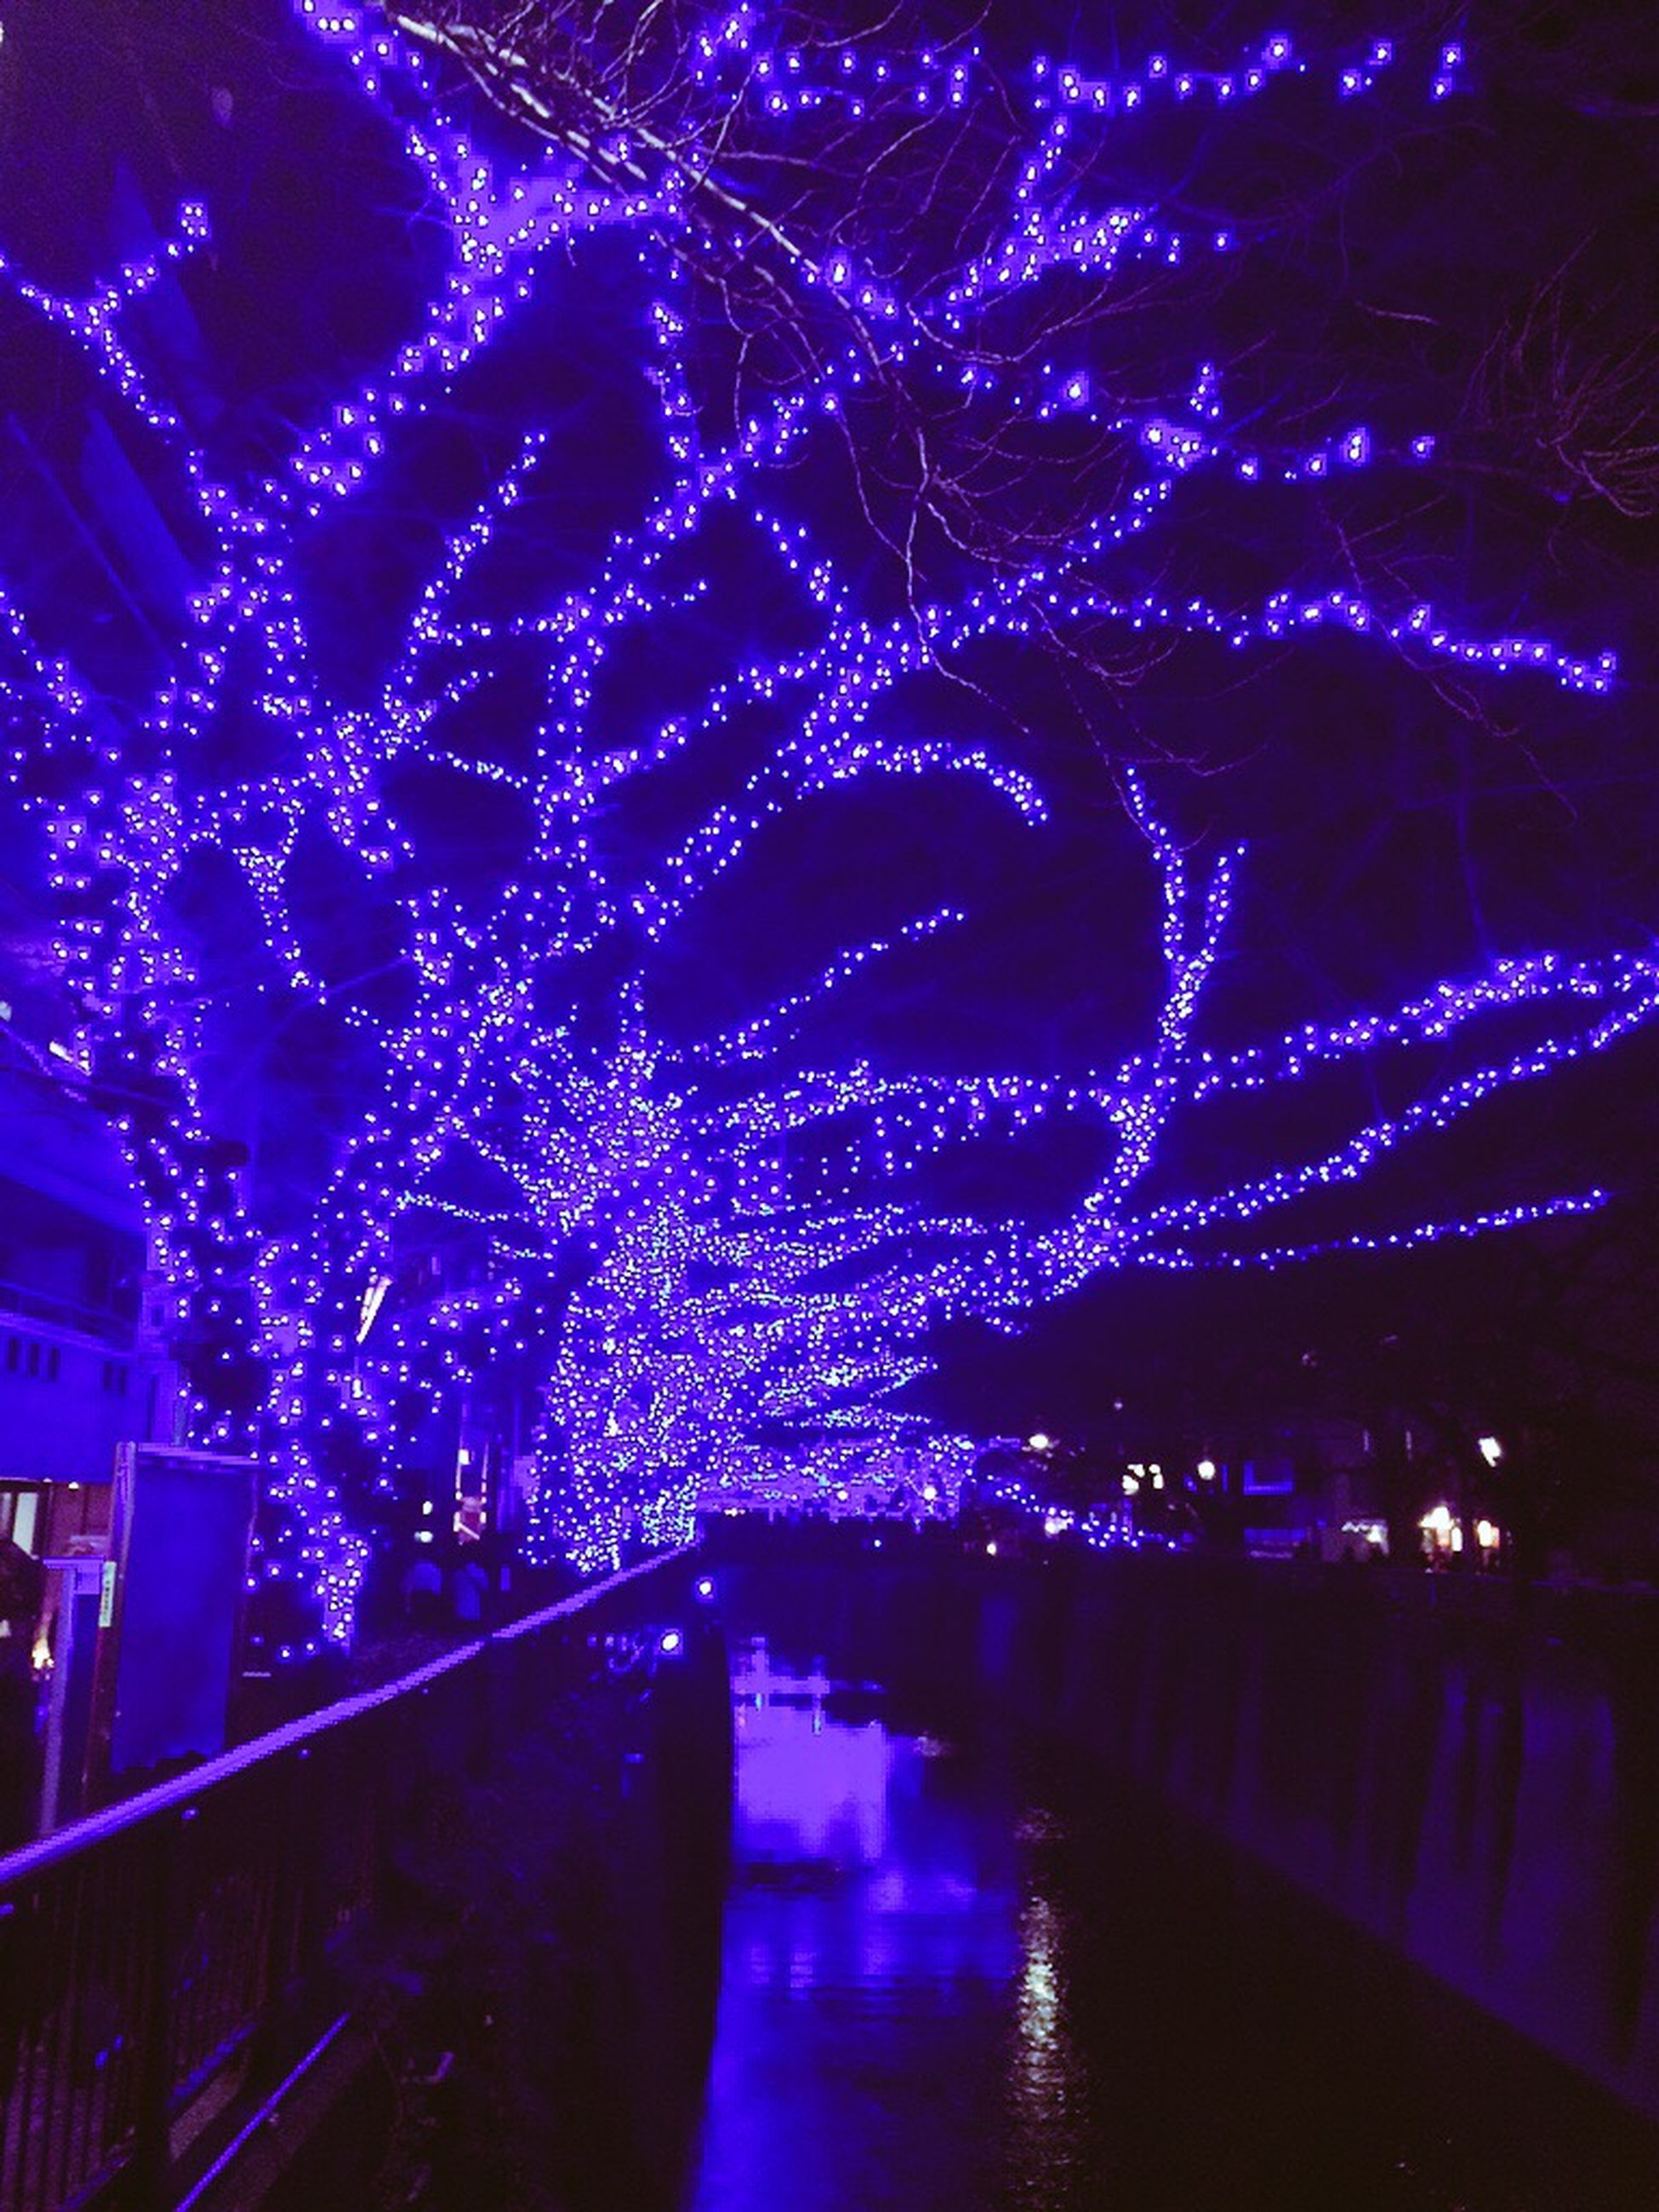 illuminated, night, water, reflection, tree, built structure, lighting equipment, architecture, branch, celebration, long exposure, glowing, motion, decoration, light, waterfront, outdoors, light - natural phenomenon, building exterior, connection